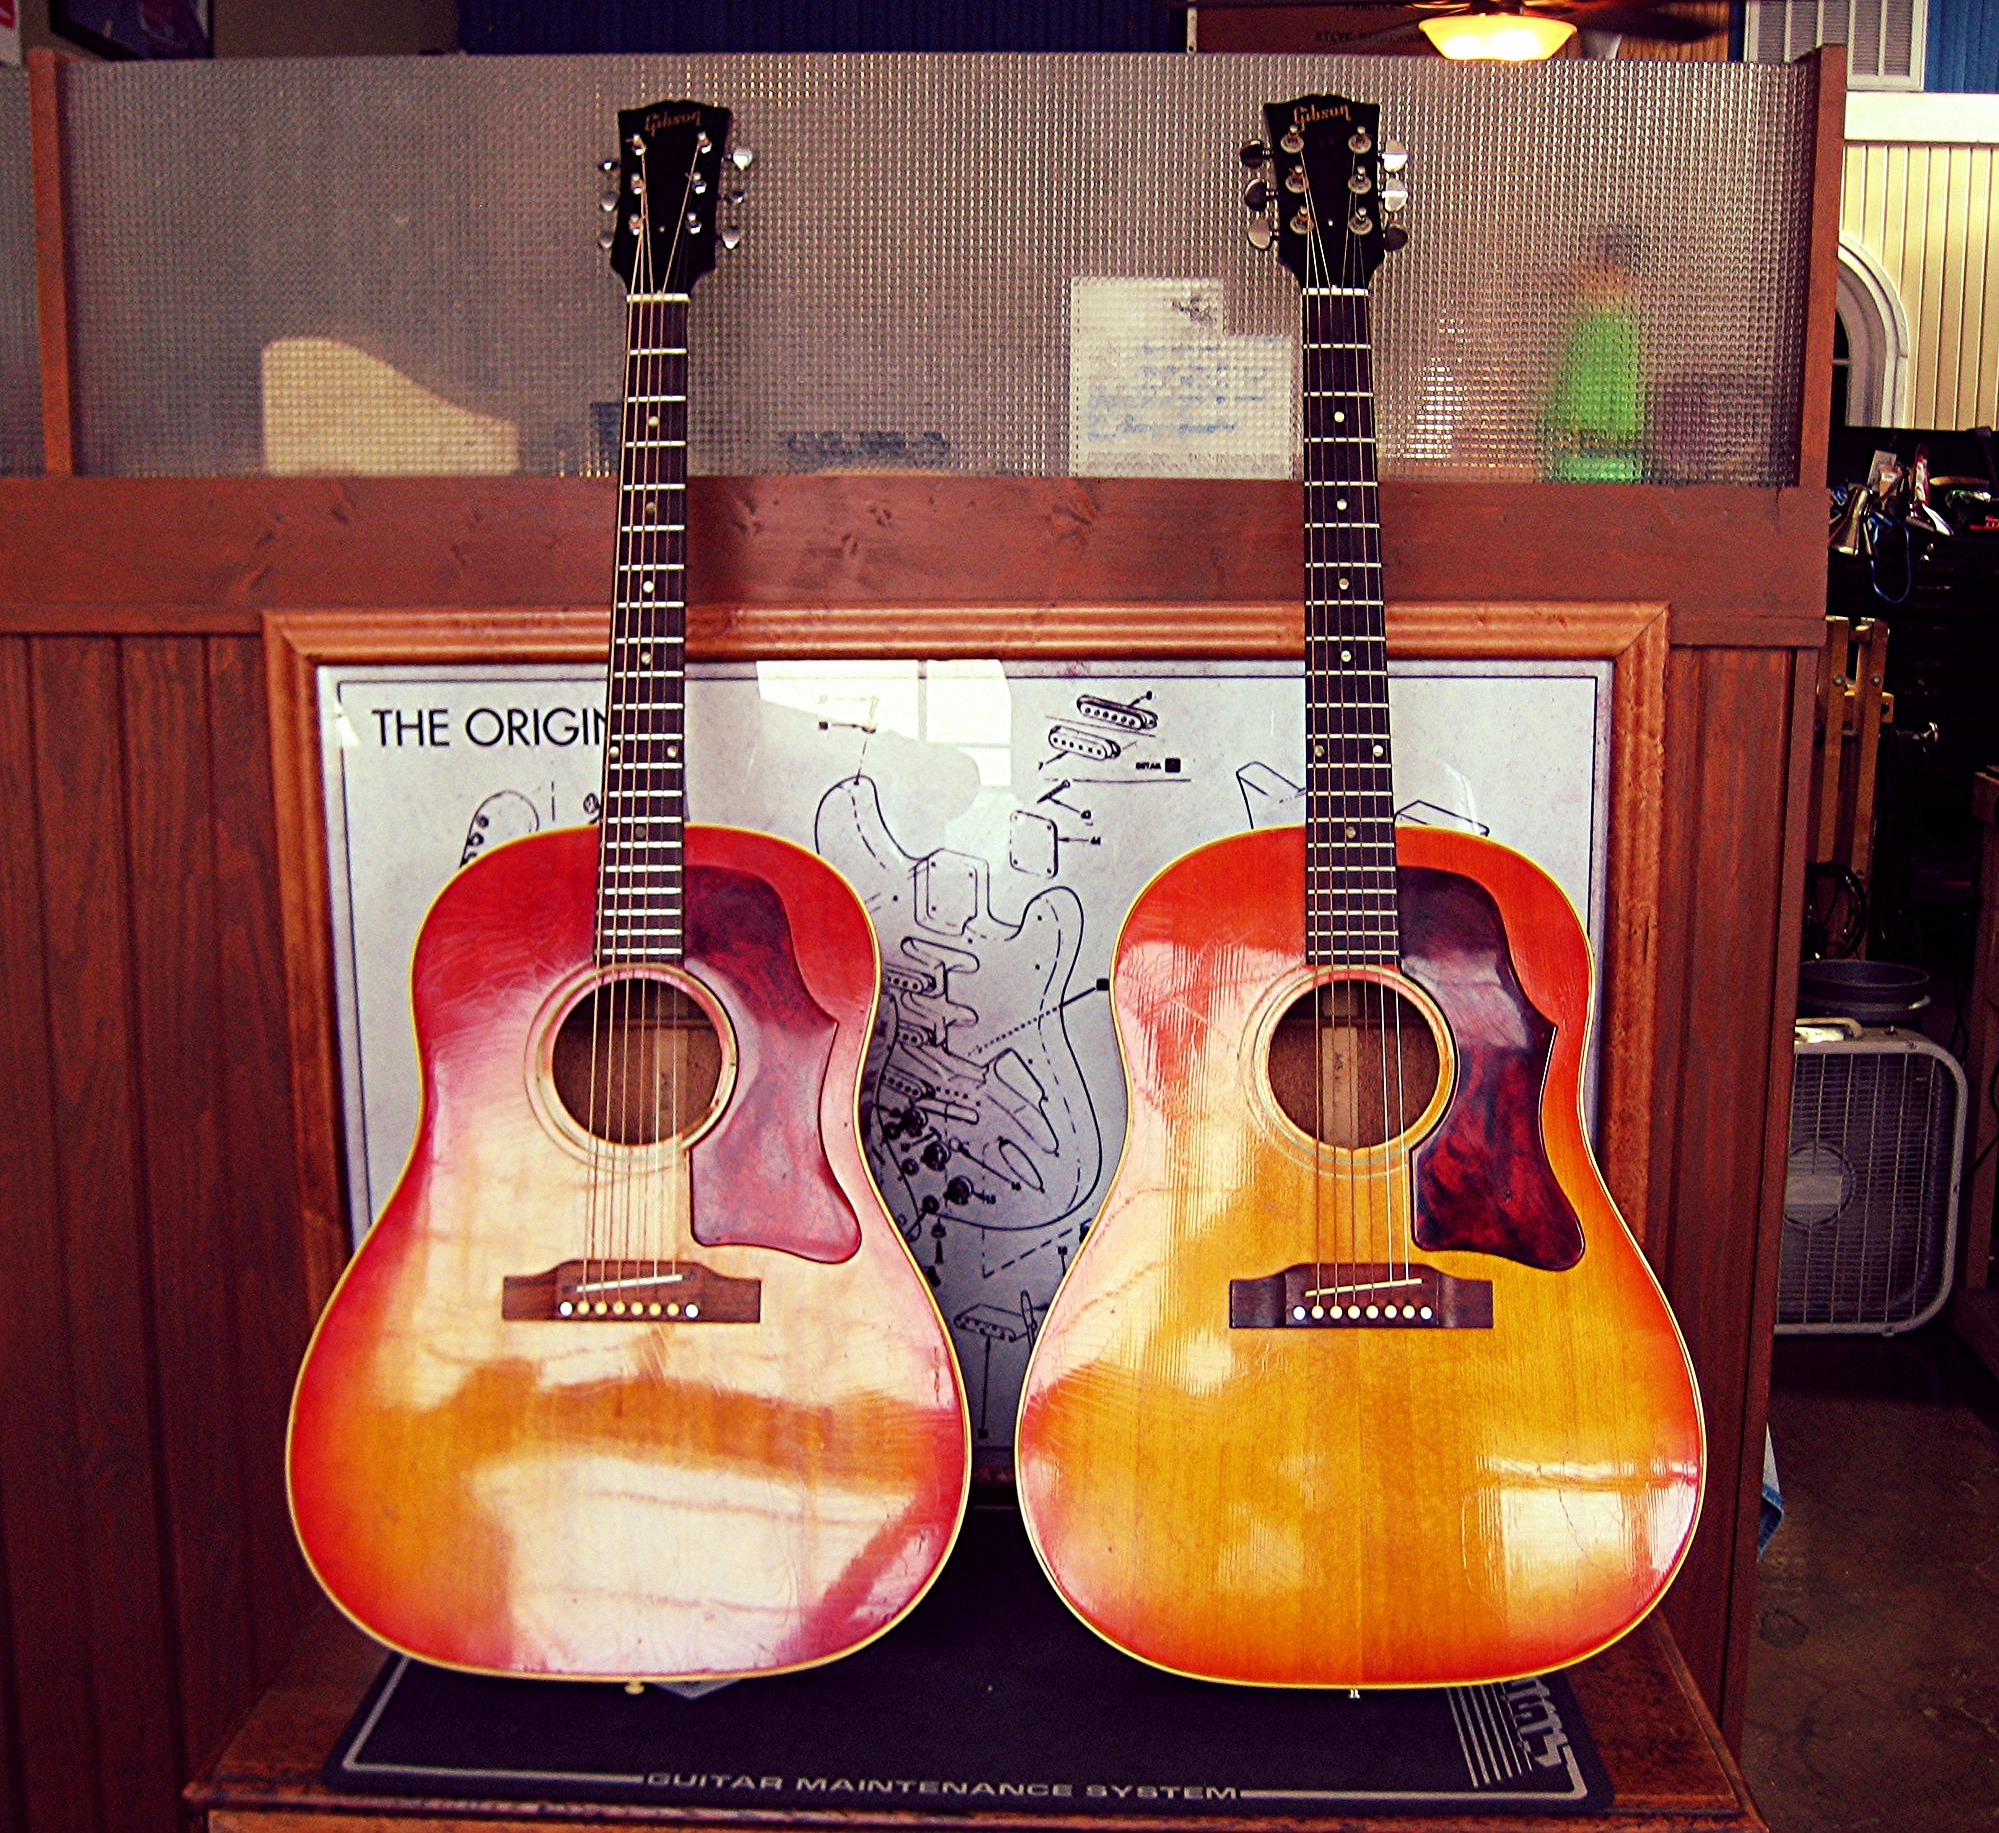 Couple a' lookers: Gibson J-45's